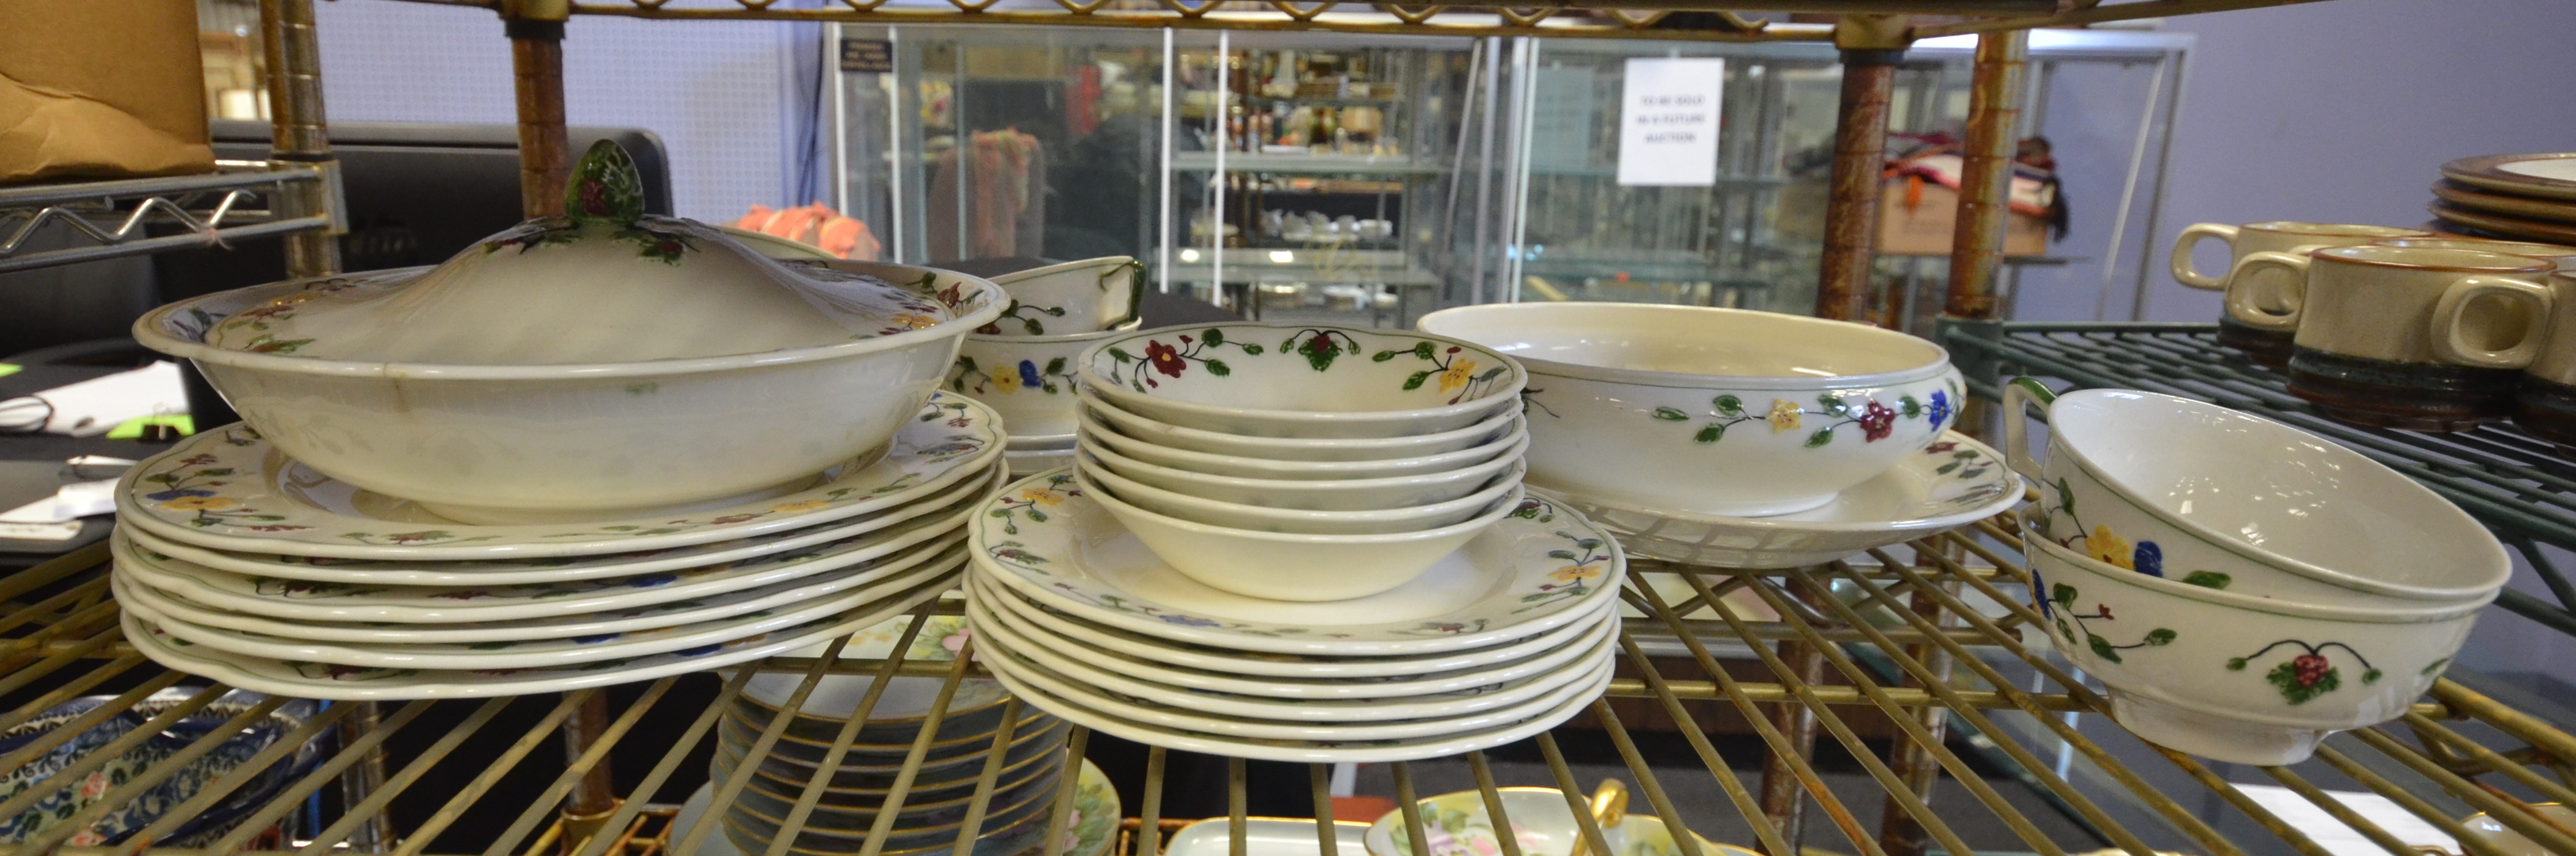 Dishes_003